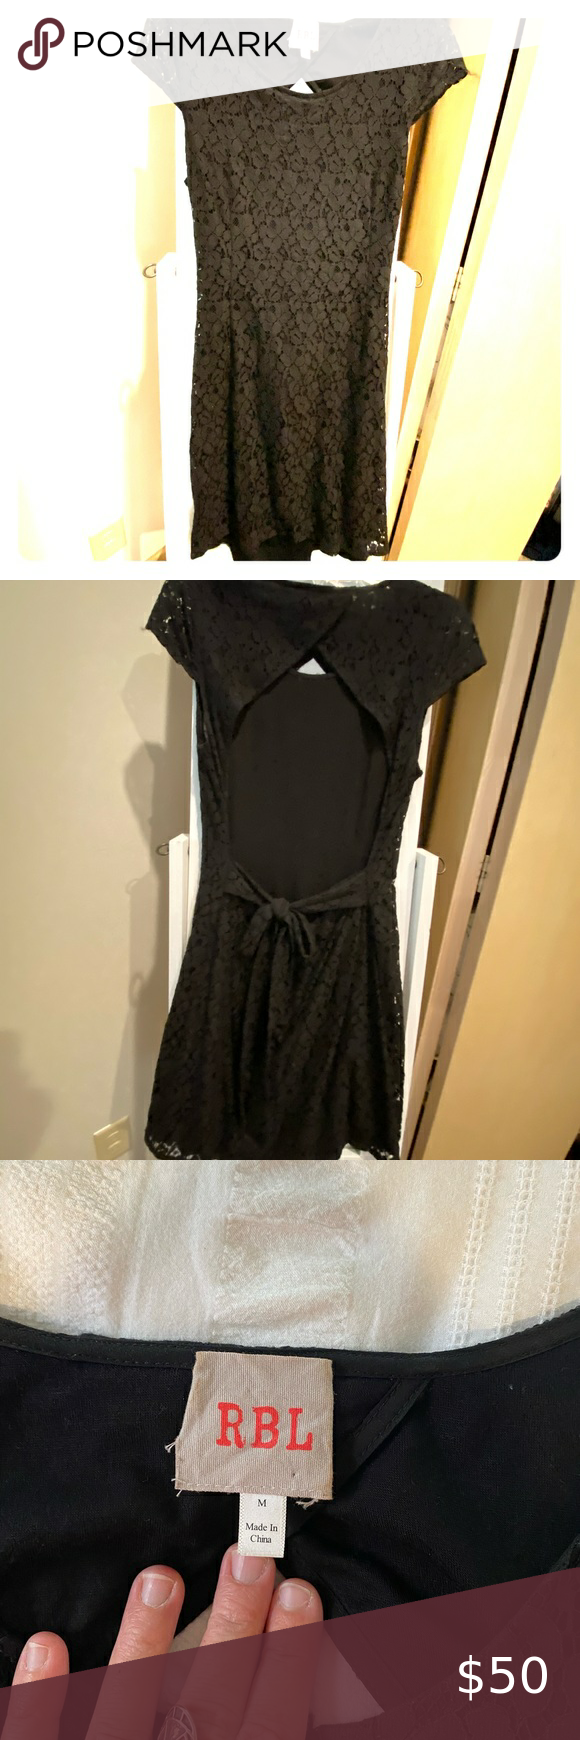 Little Black Dress Top Shop Cutest Lbd Have Worn This For A Few Fun Nights Out And Nye Super Cute Lace Abs Modest In In 2020 Little Black Dress Fashion Black Dress [ 1740 x 580 Pixel ]